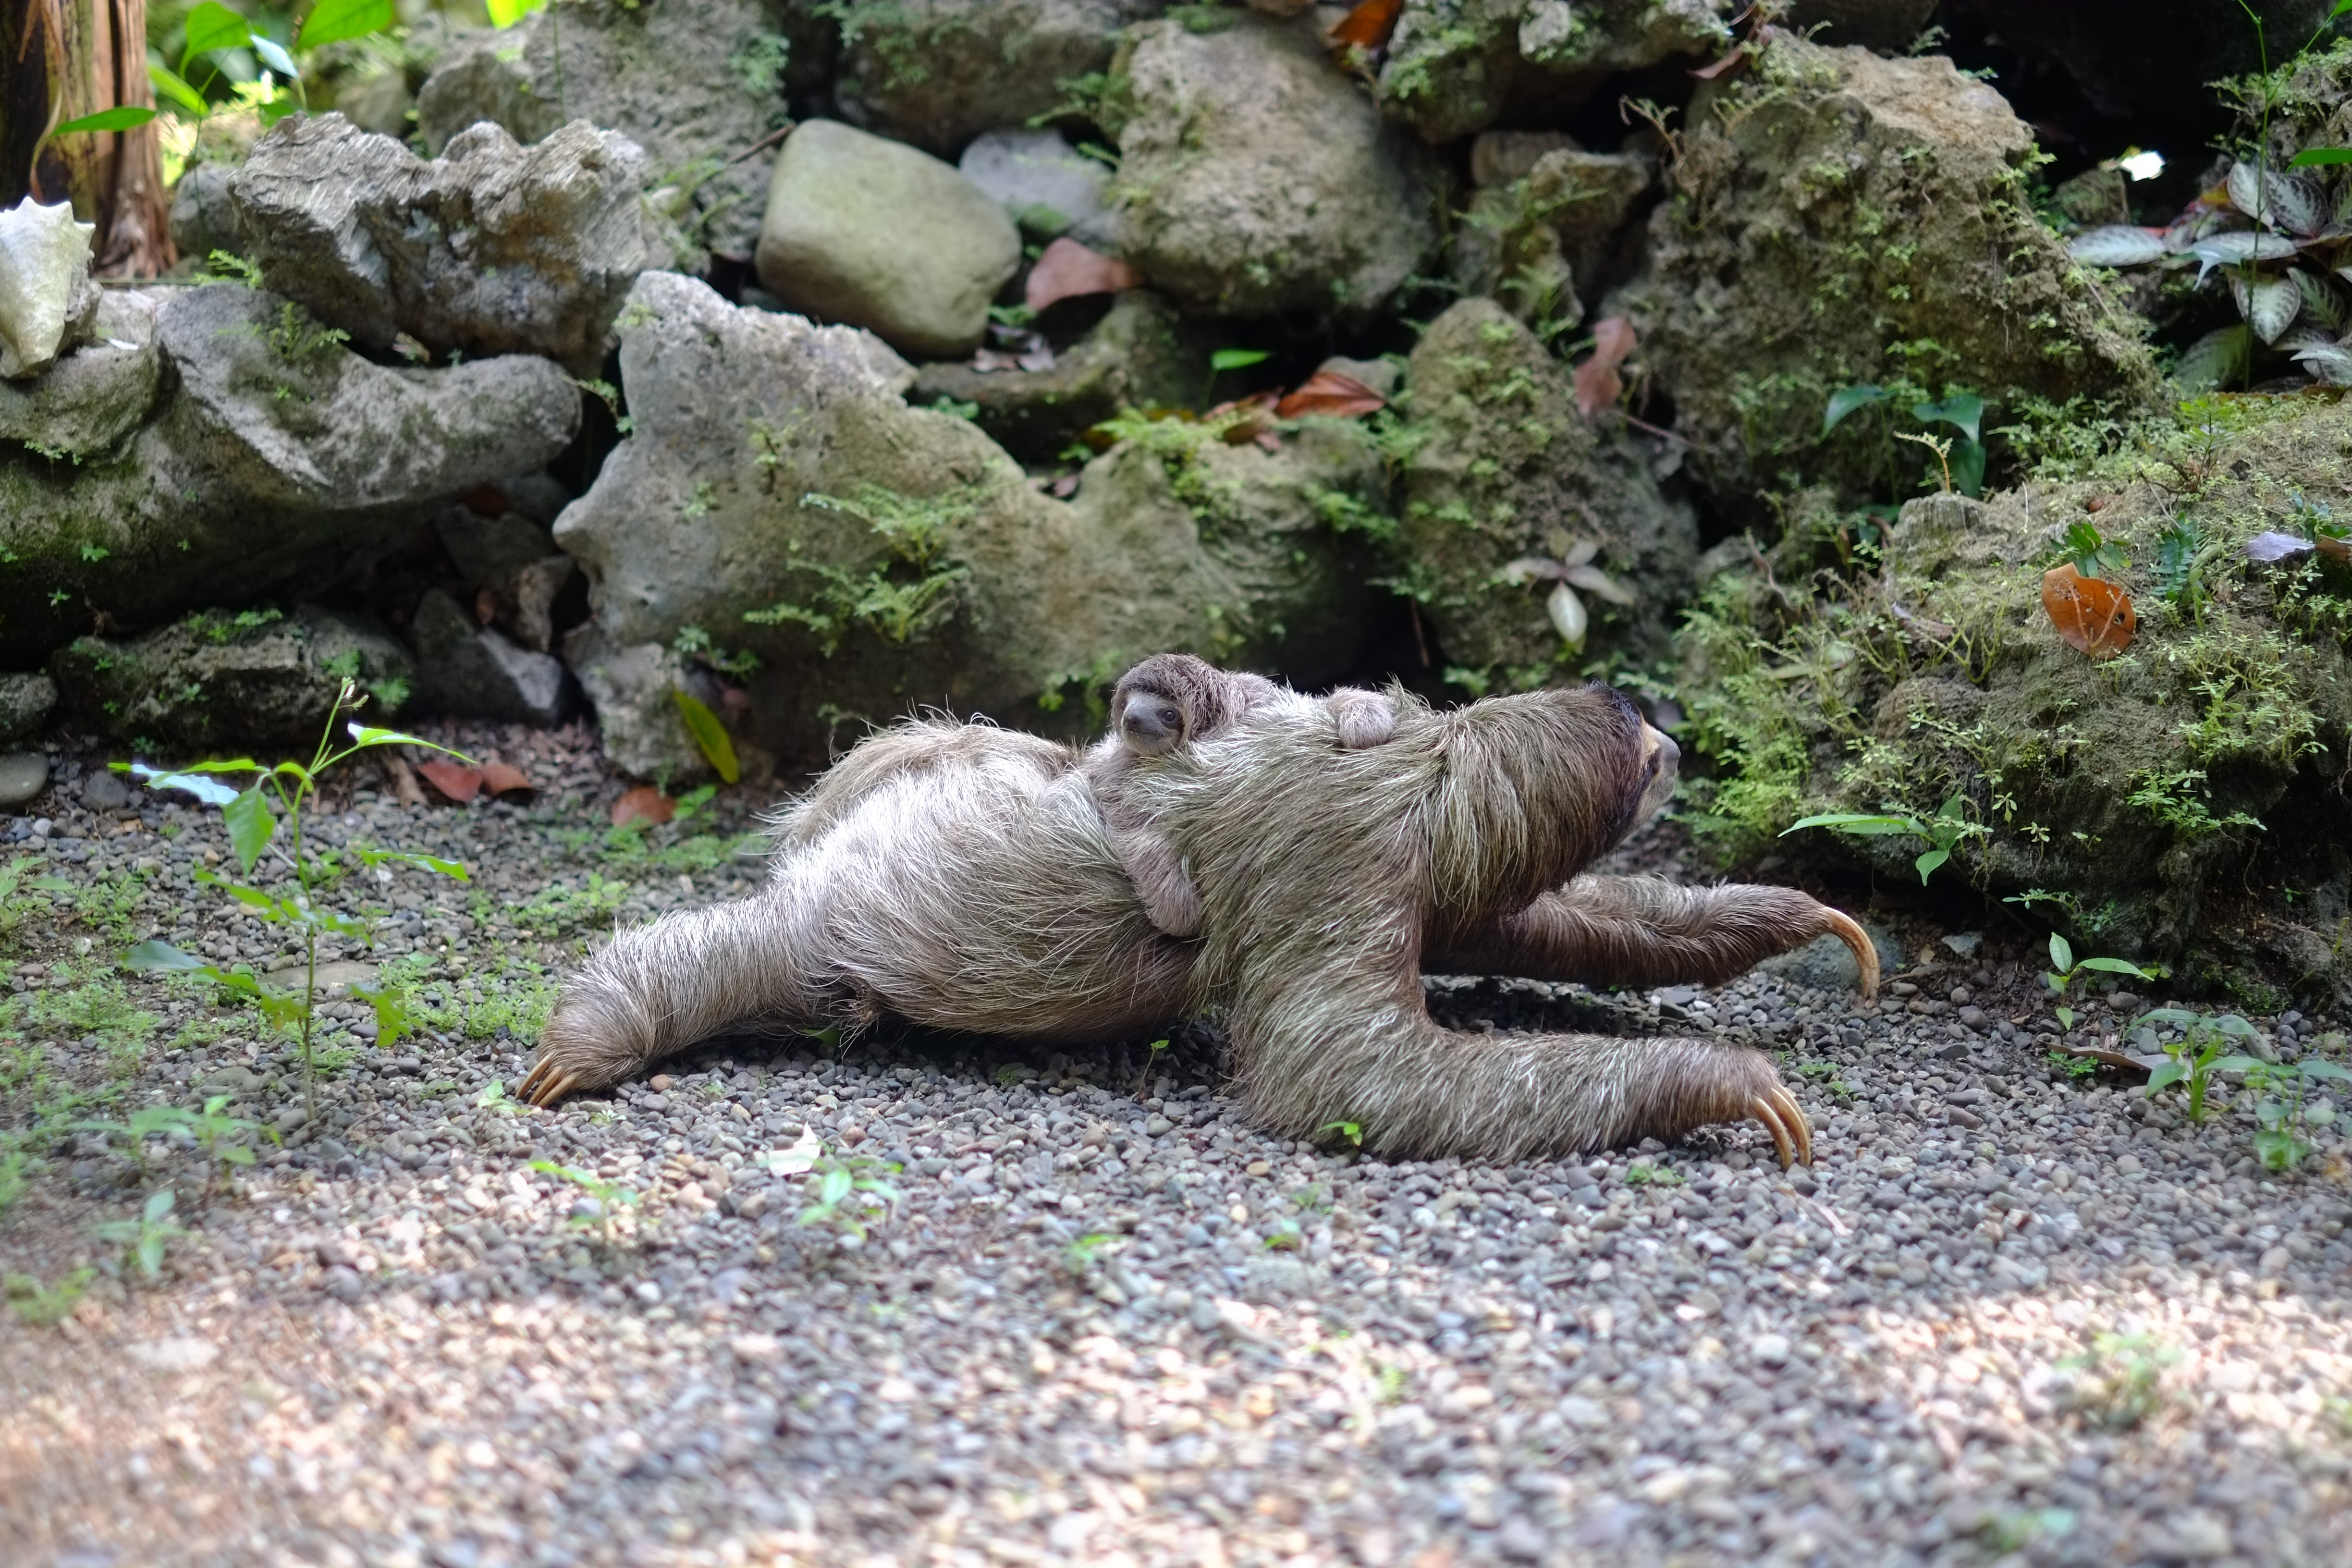 two chimpanzee lying on soil at daytime